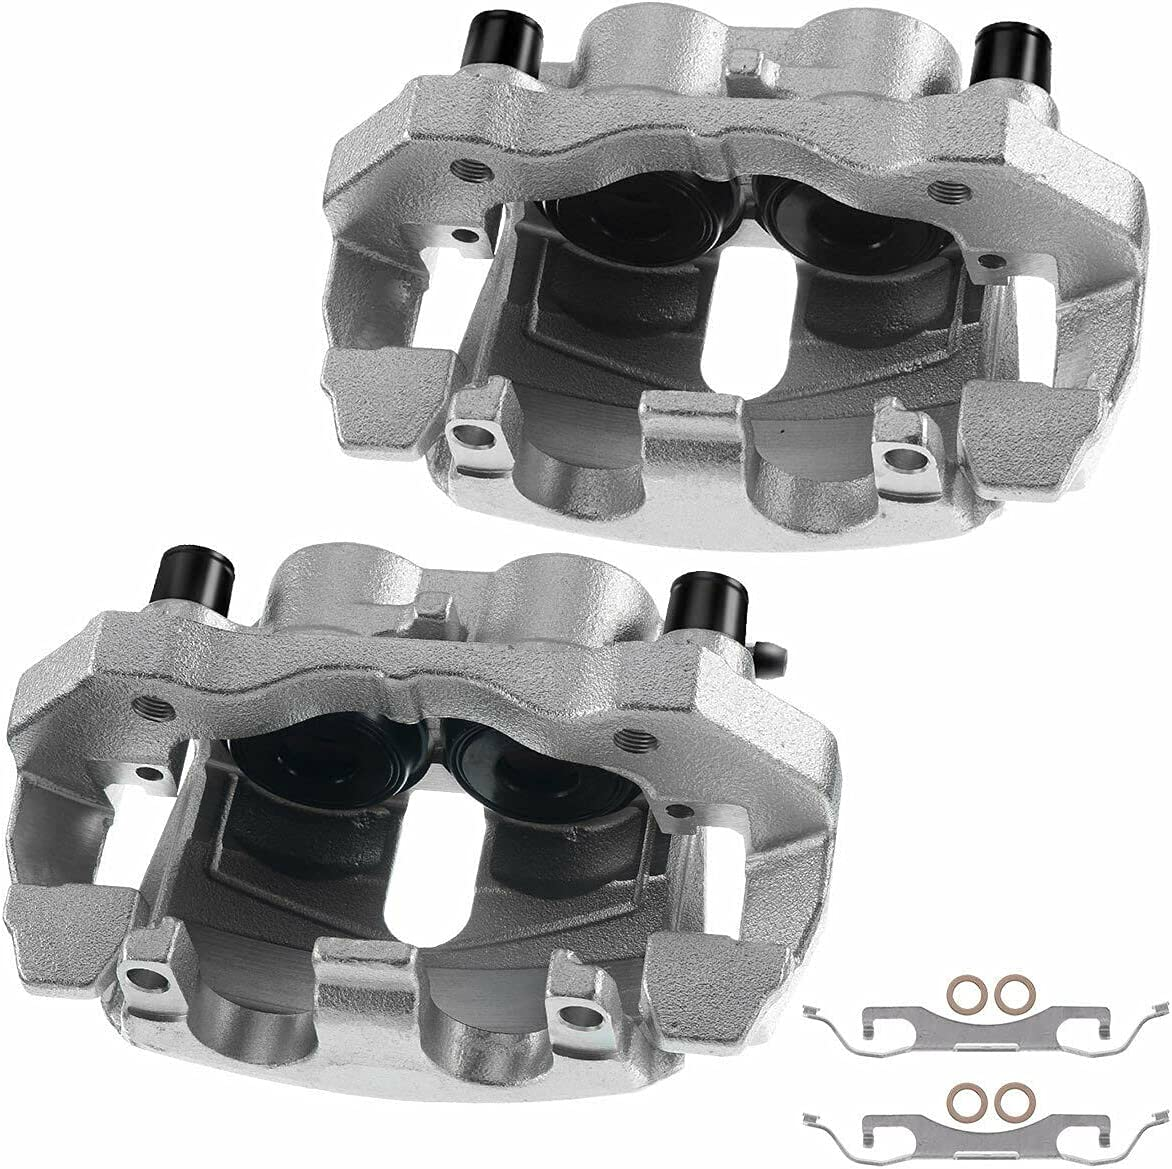 2x Disc Brake Caliper Compatible 18-B5296 with T-USBCB85297LR Cheap Rapid rise mail order sales by